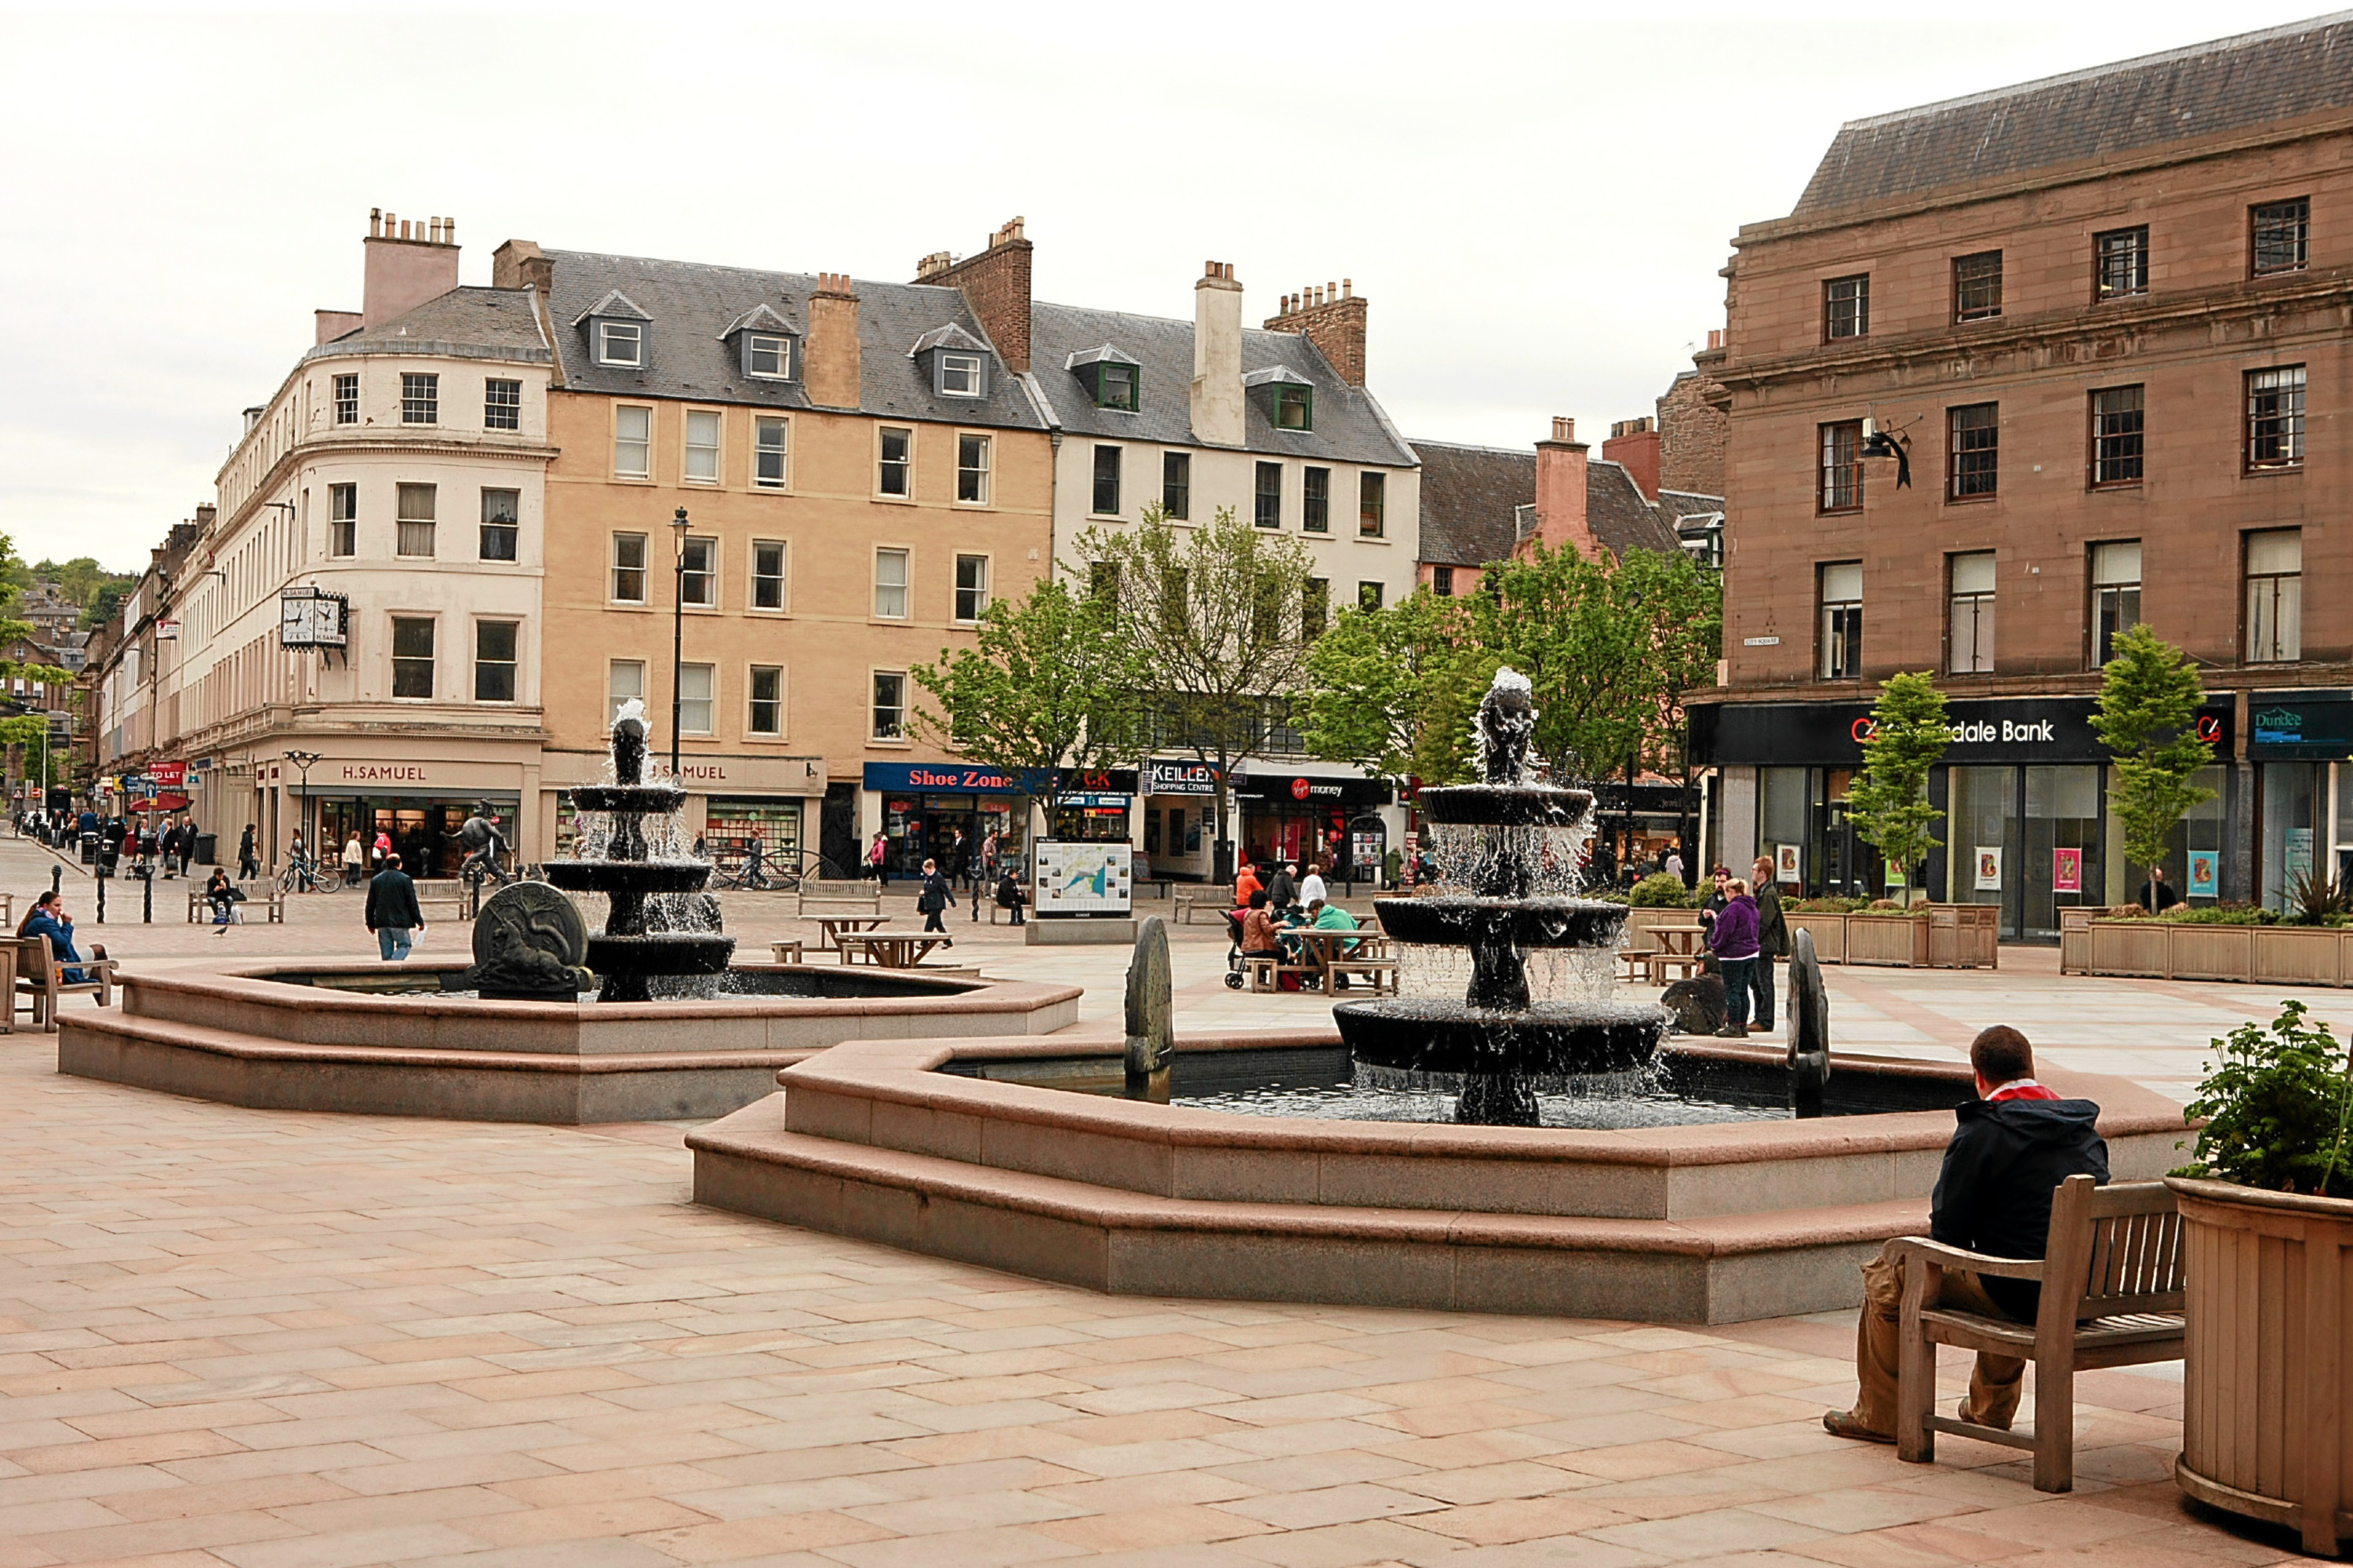 The scheme was launched in City Square.